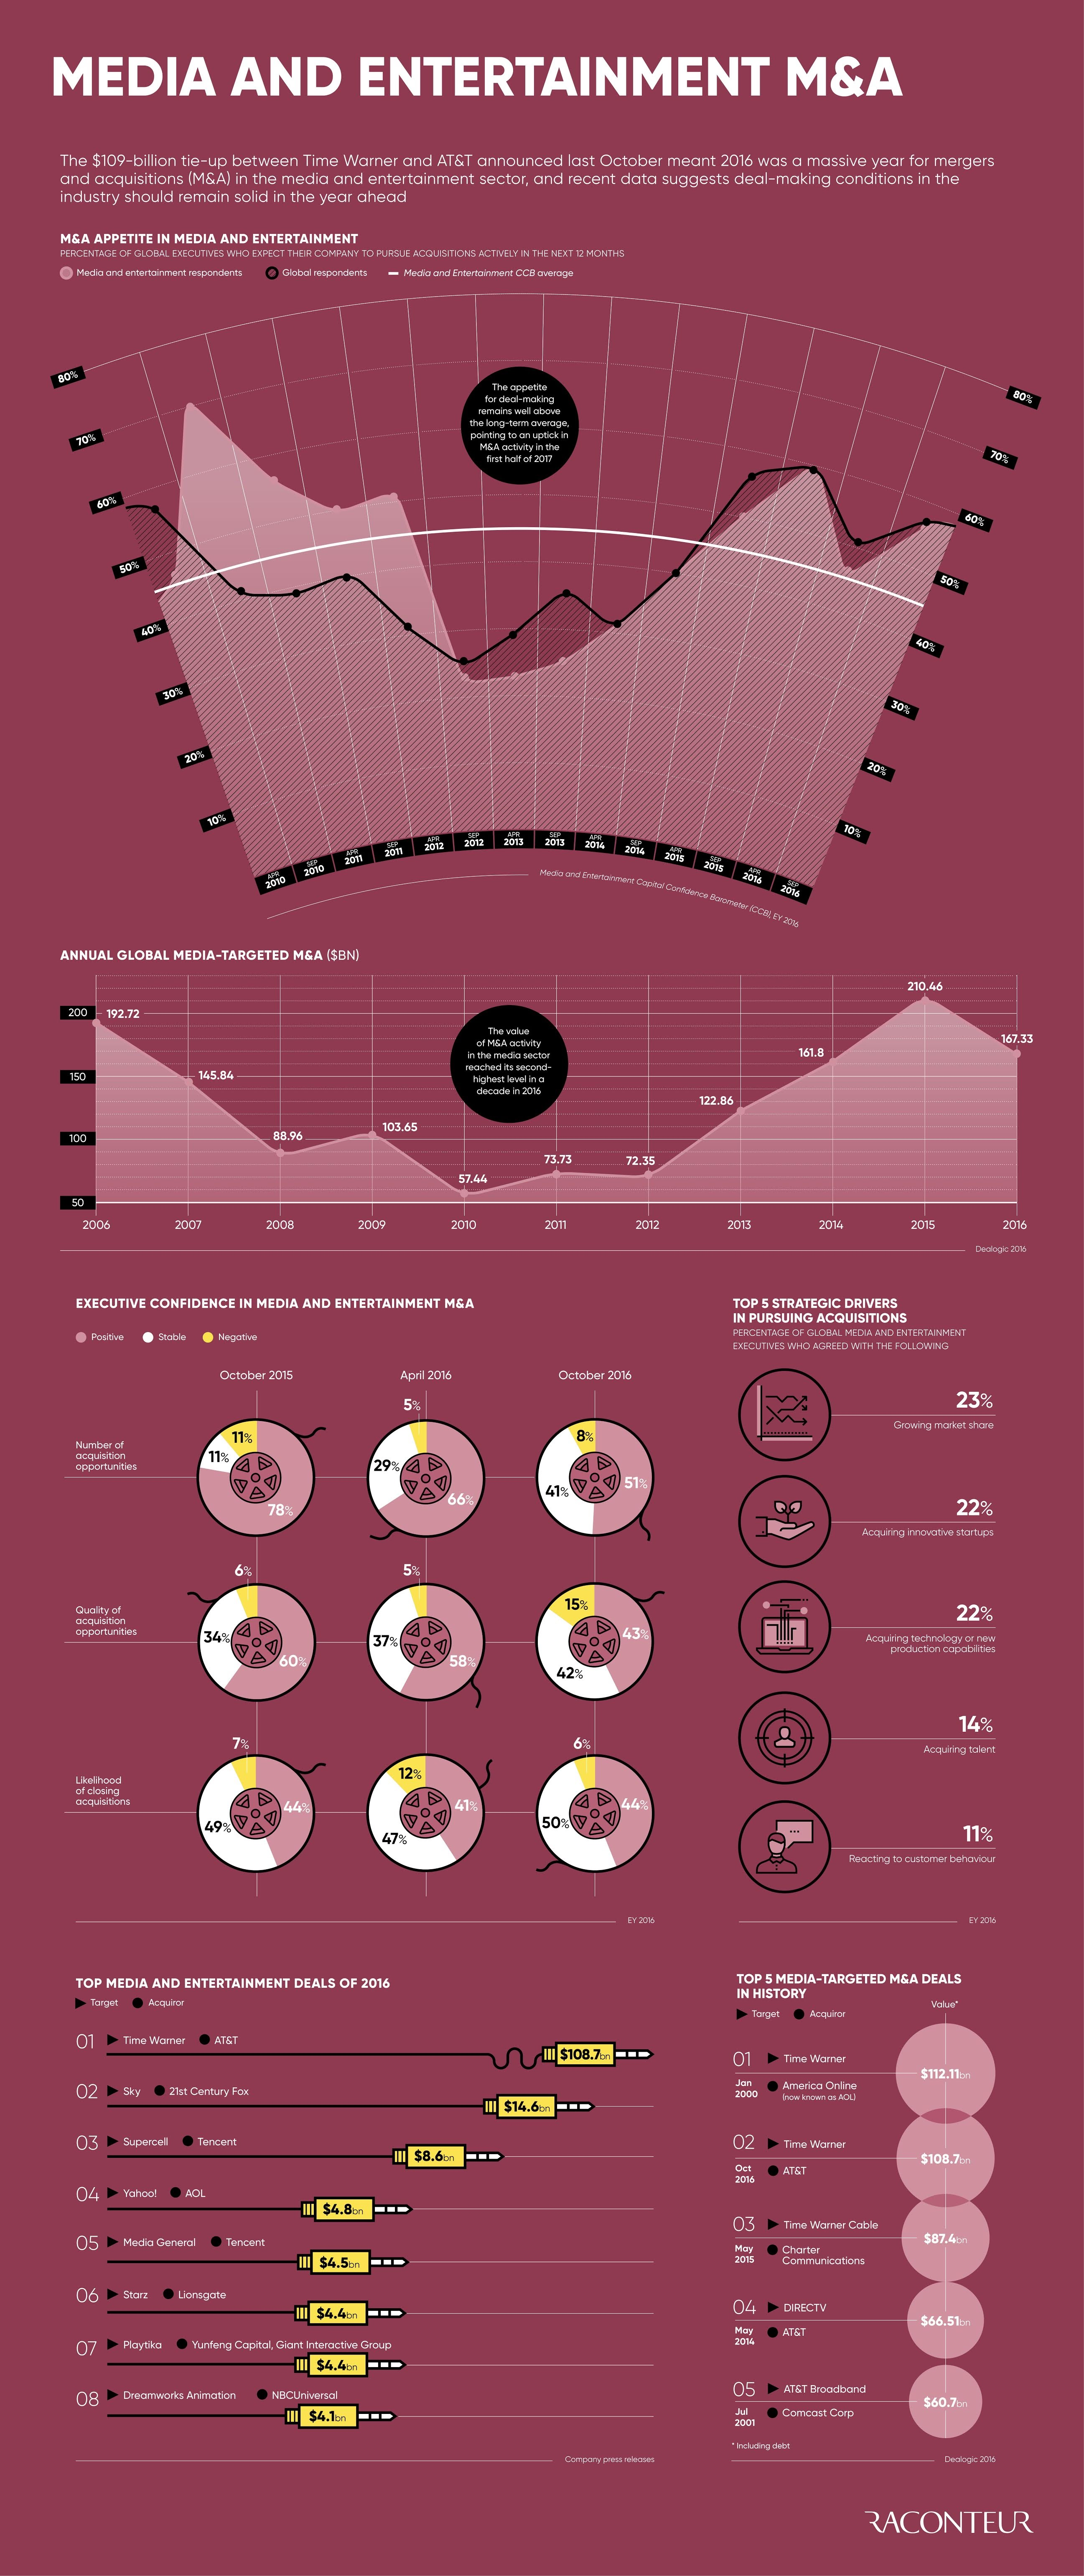 Media and entertainment M&A #infographic